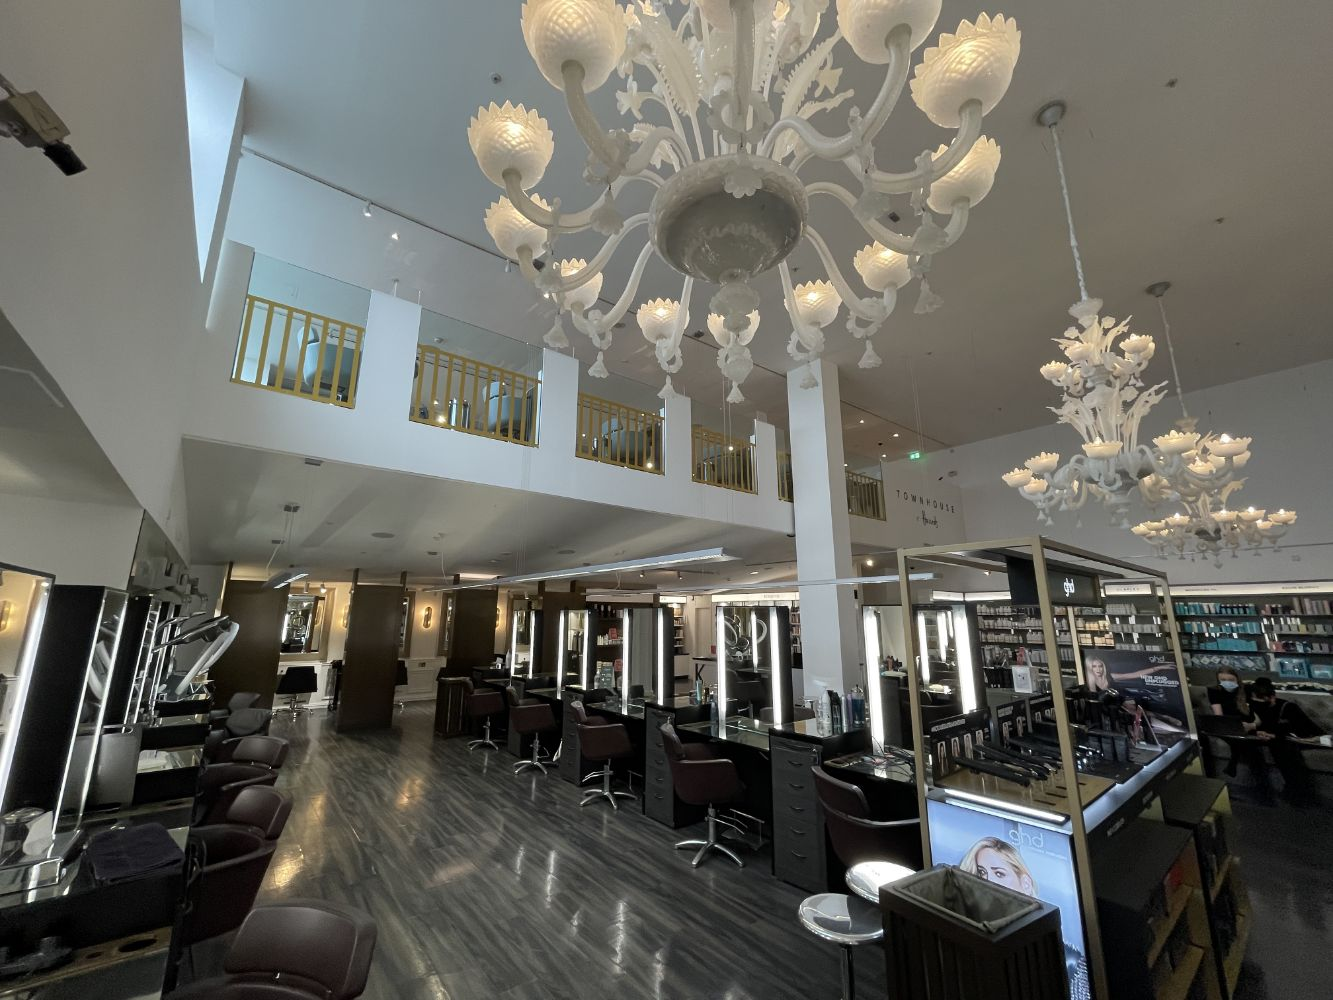 Thursday 28th October - Professional Salon Equipment & Bespoke Shop Fittings And Display Items From A Renowned London Department Store & Spa